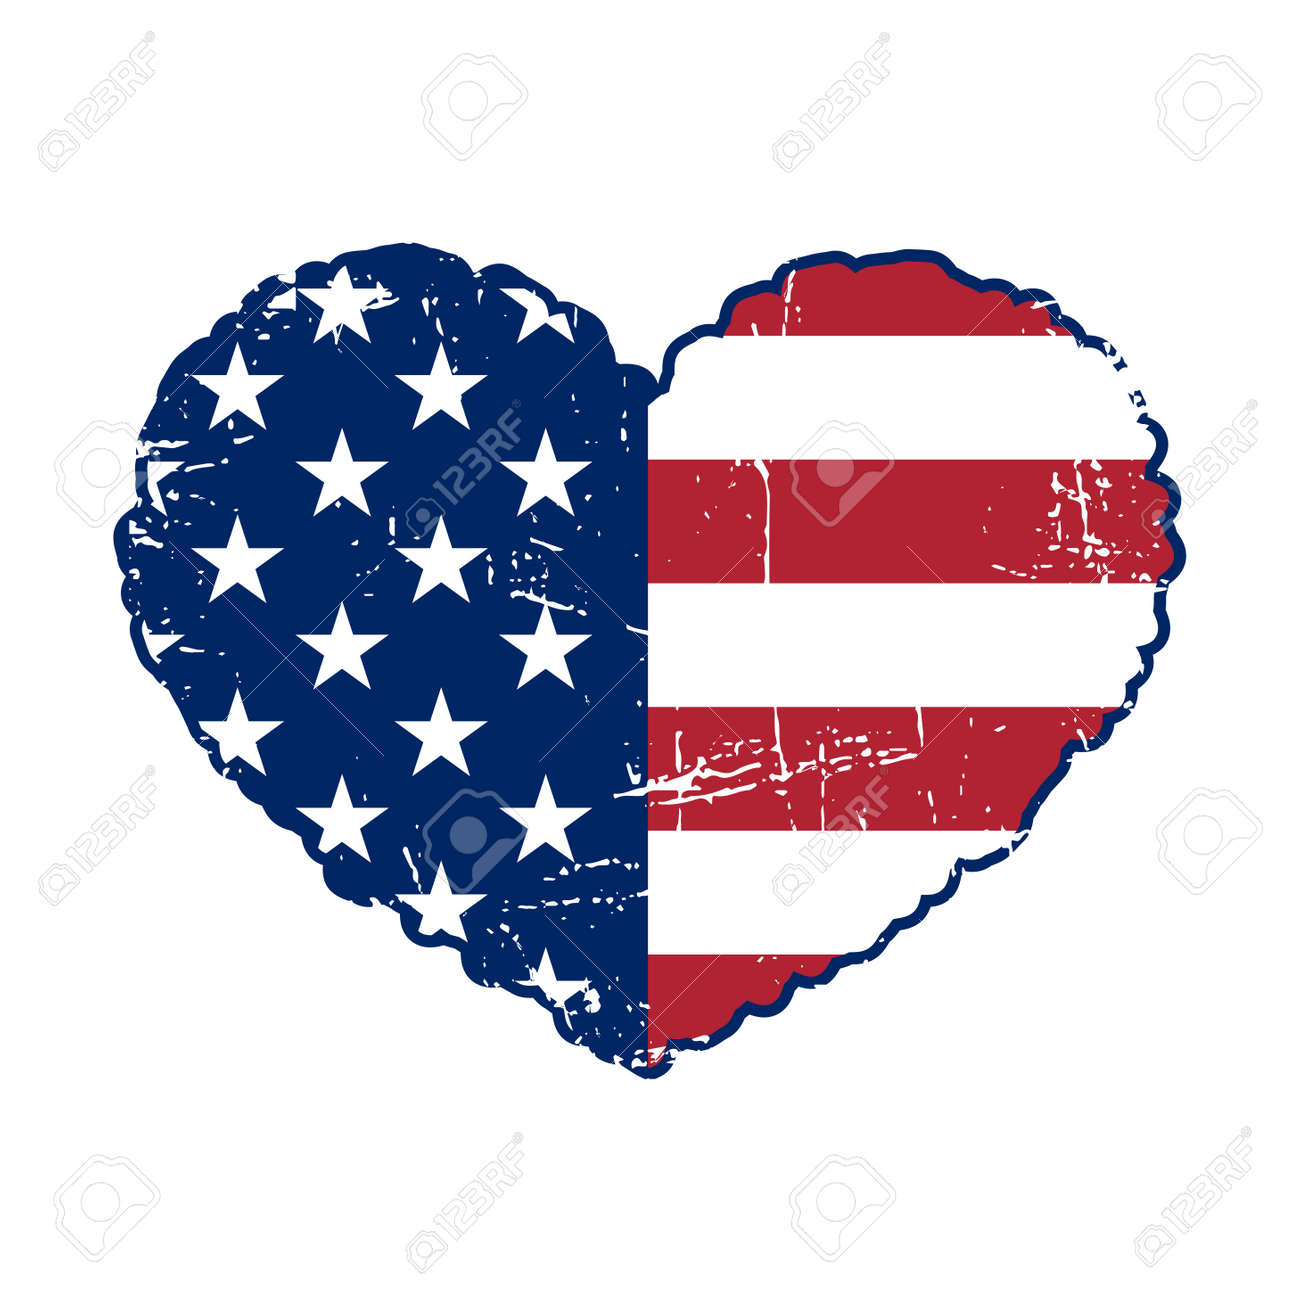 american flag heart shaped on white background patriotic usa rh 123rf com american flag graphics free american flag graphics for motorcycle helmets